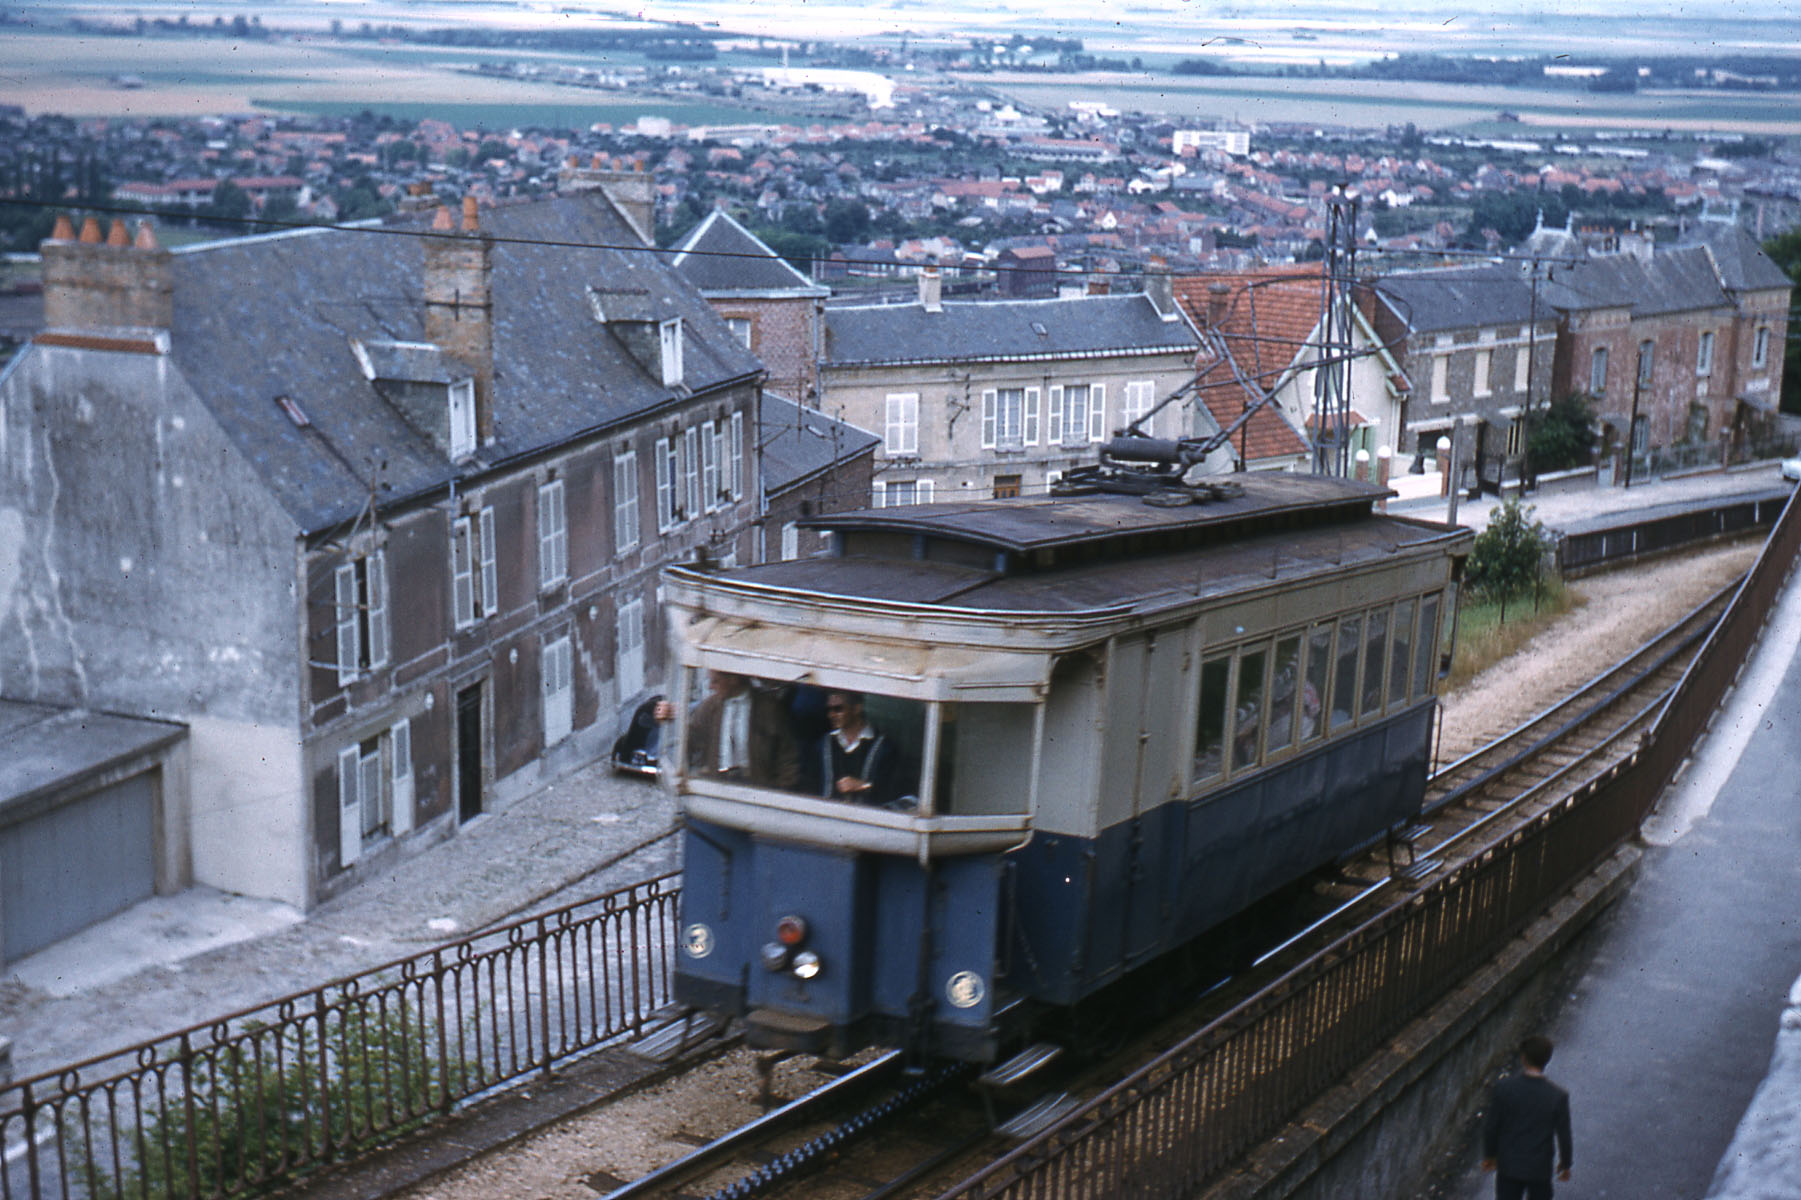 Laon France  city images : JHM 1962 0002 Laon, tramway à crémaillère | Flickr Photo ...